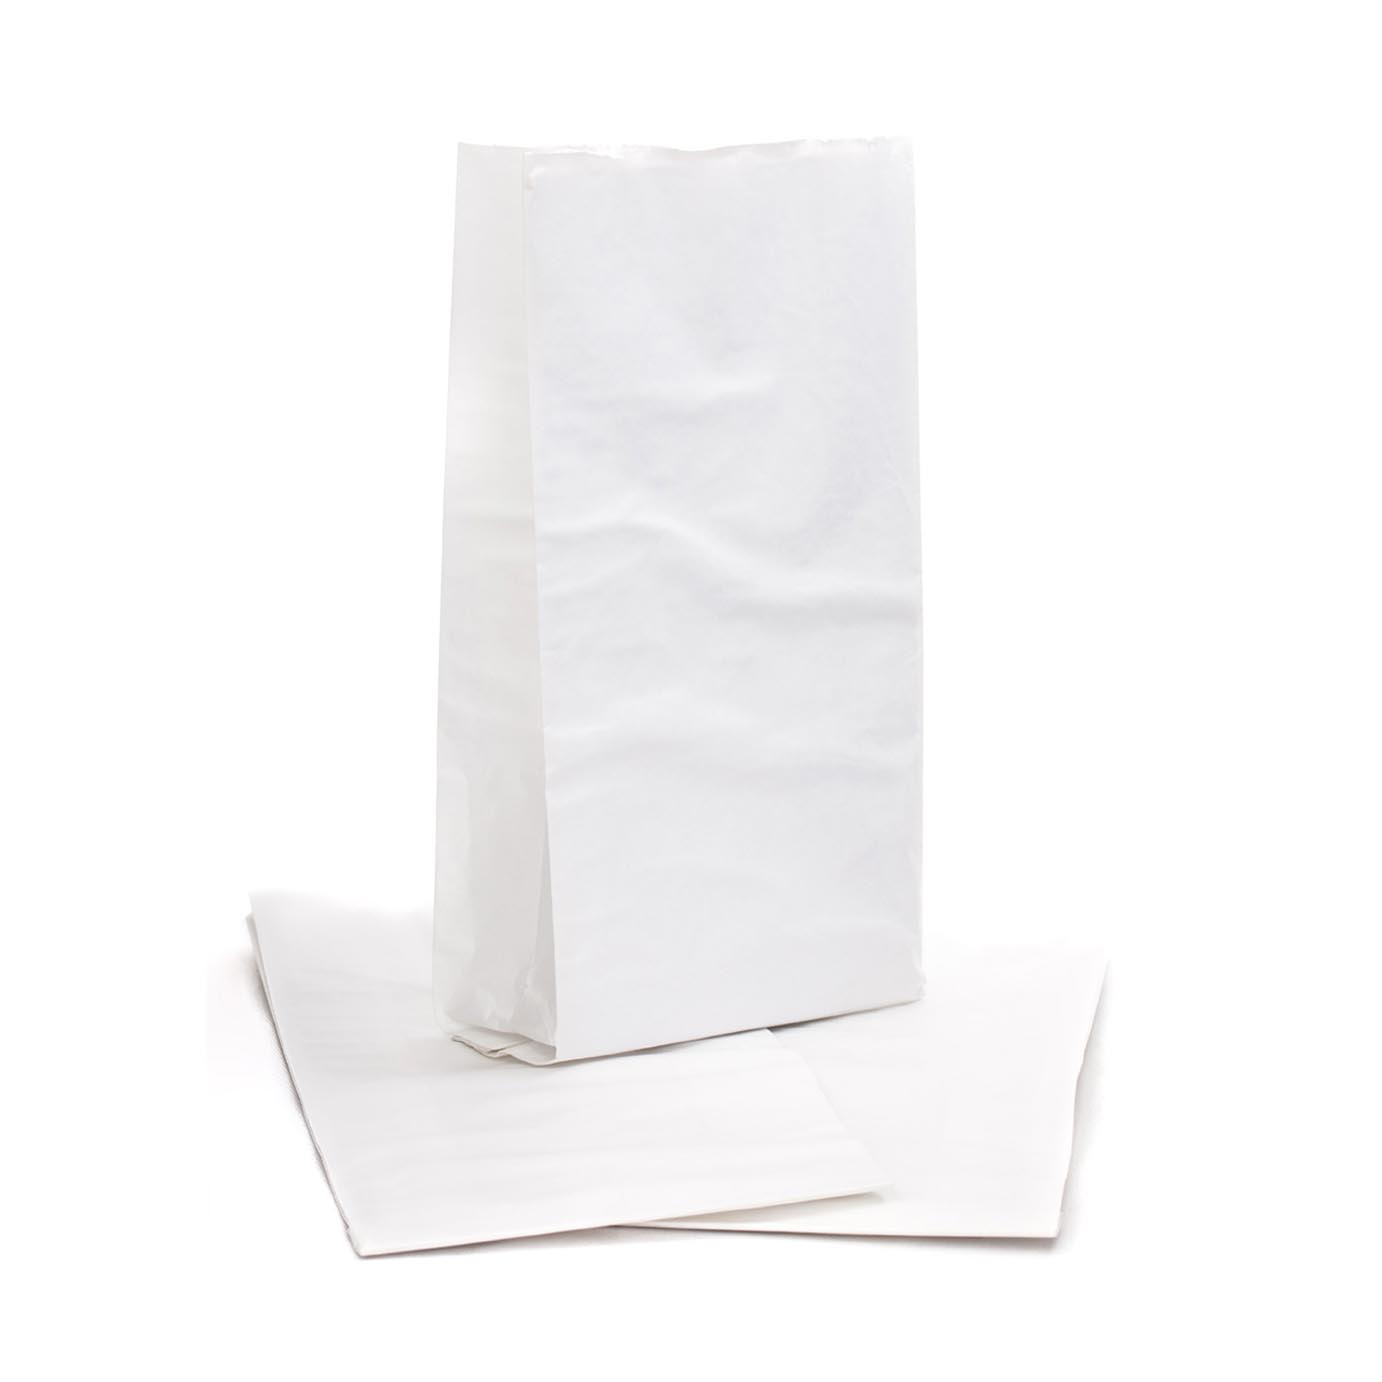 Airline air sickness bags from Horsleys